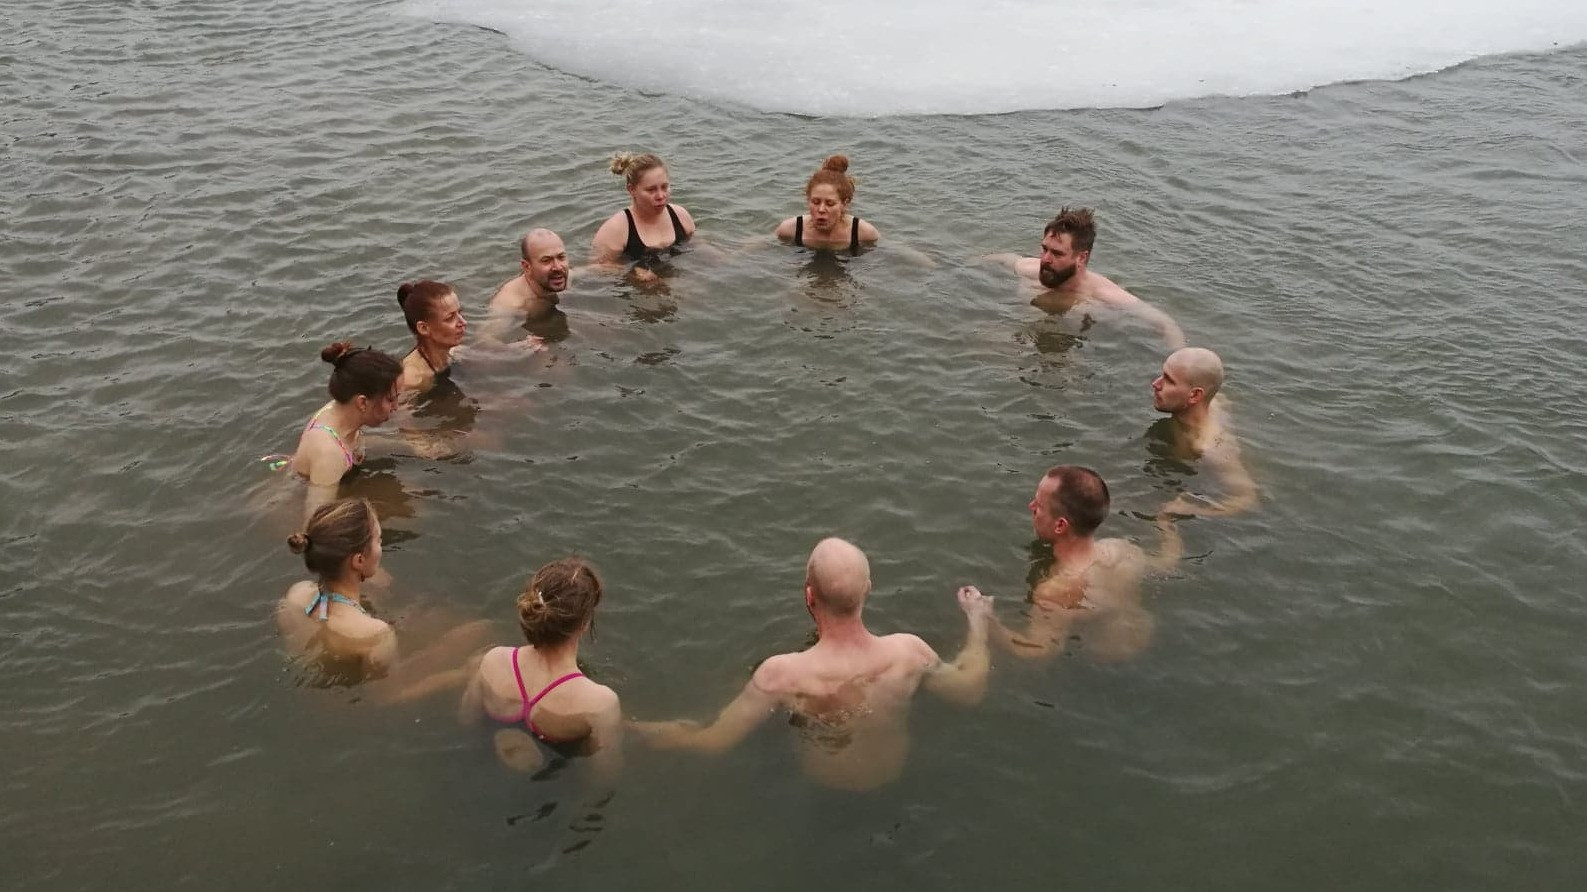 Image 1 of 1 - Experience the Wim Hof Method to get an impression of  at